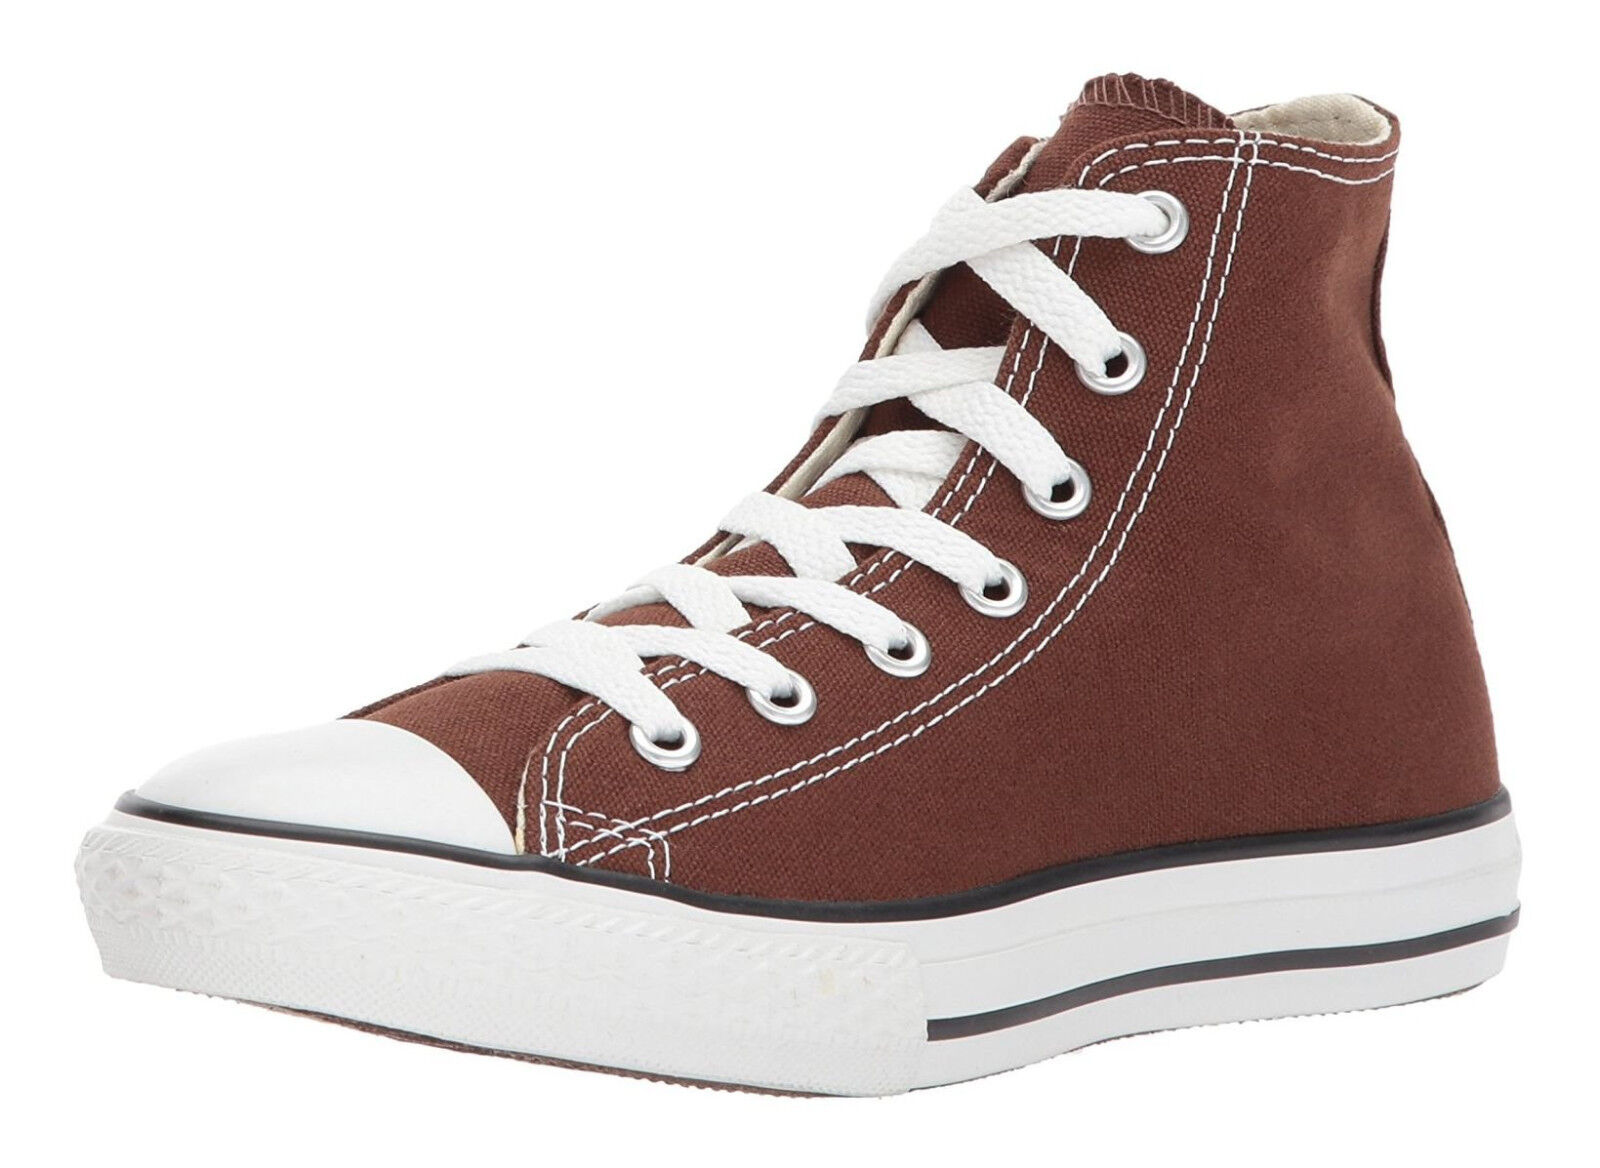 Converse Chuck Taylor All Star Hi Top Chocolat Homme paniers Chaussures objet 1P626